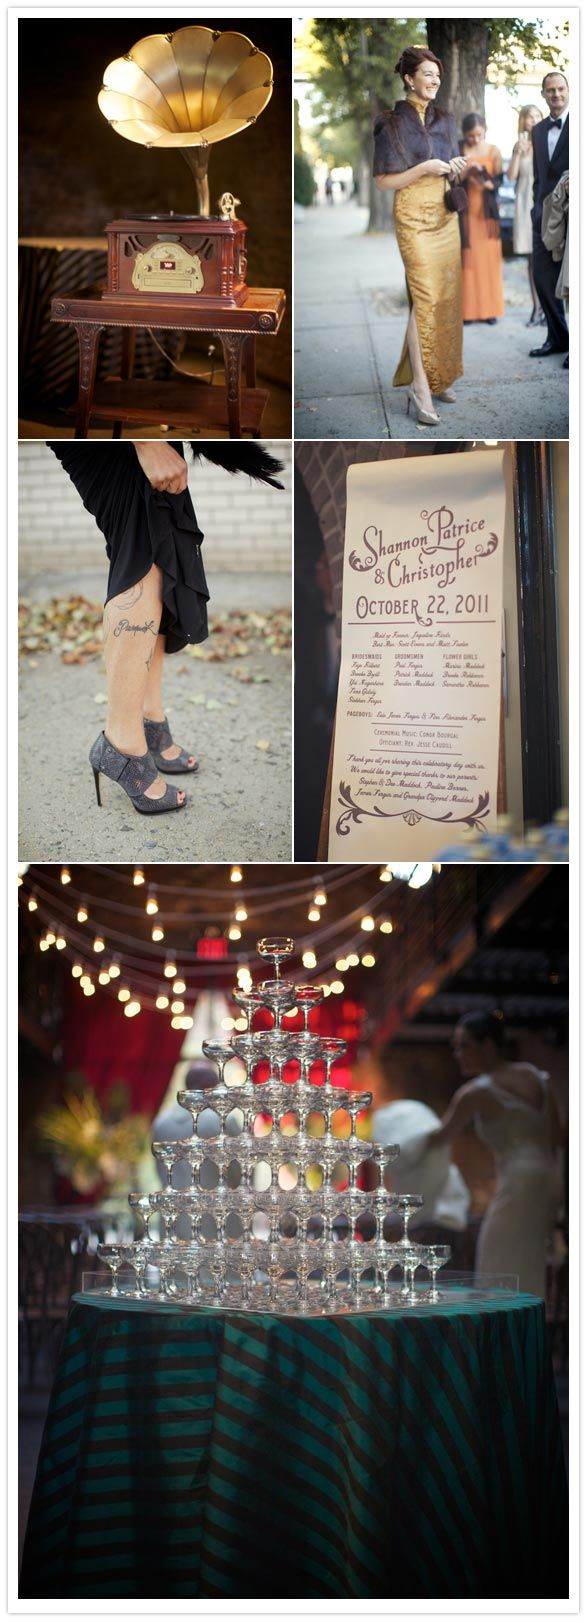 1920's themed wedding decorations  nyc us speakeasy theme wedding  Wedding Invites  Pinterest